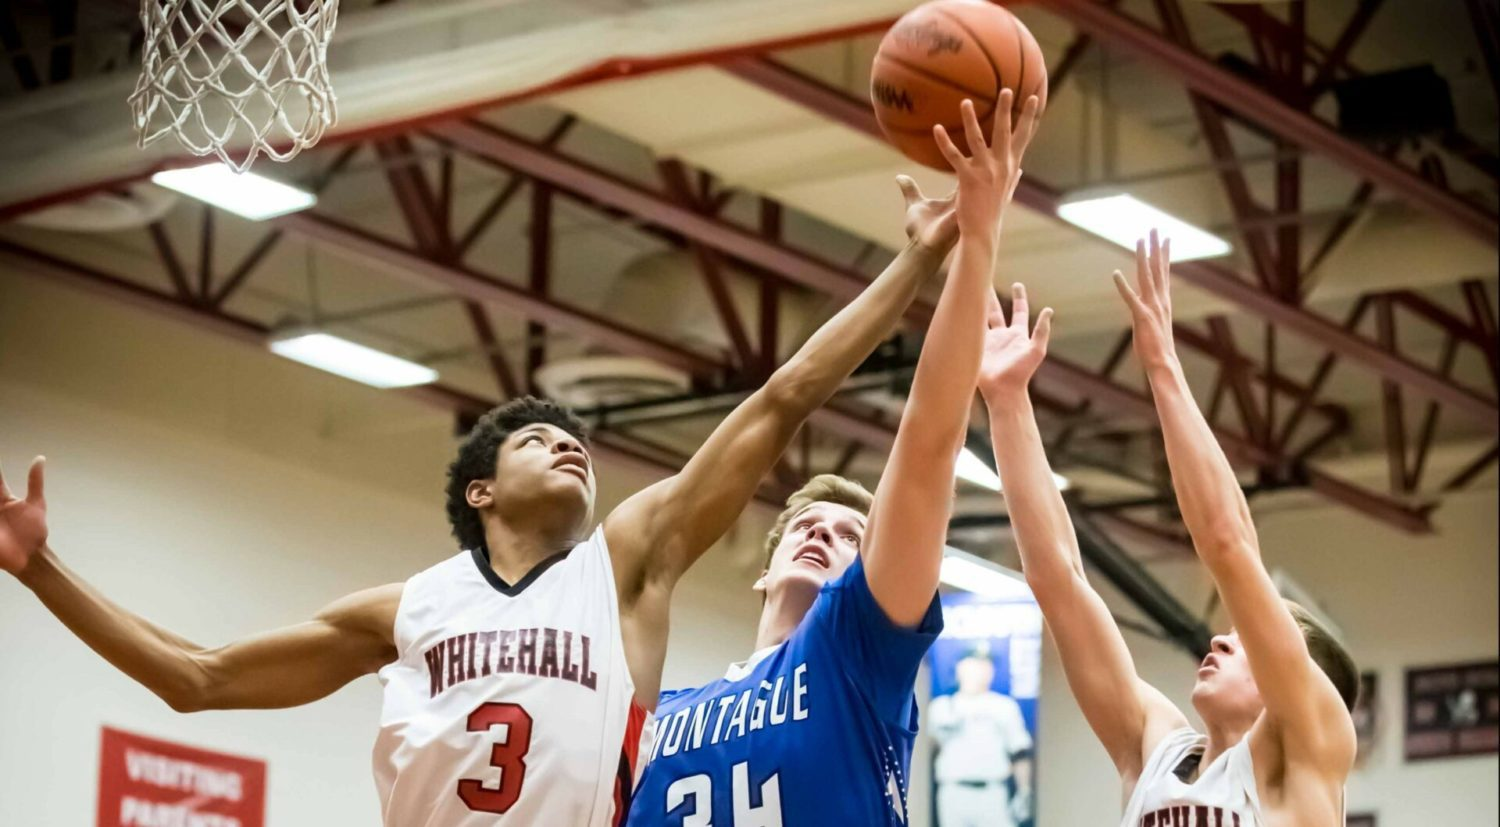 Whitehall stays unbeaten in conference play with a 62-51 victory over Montague